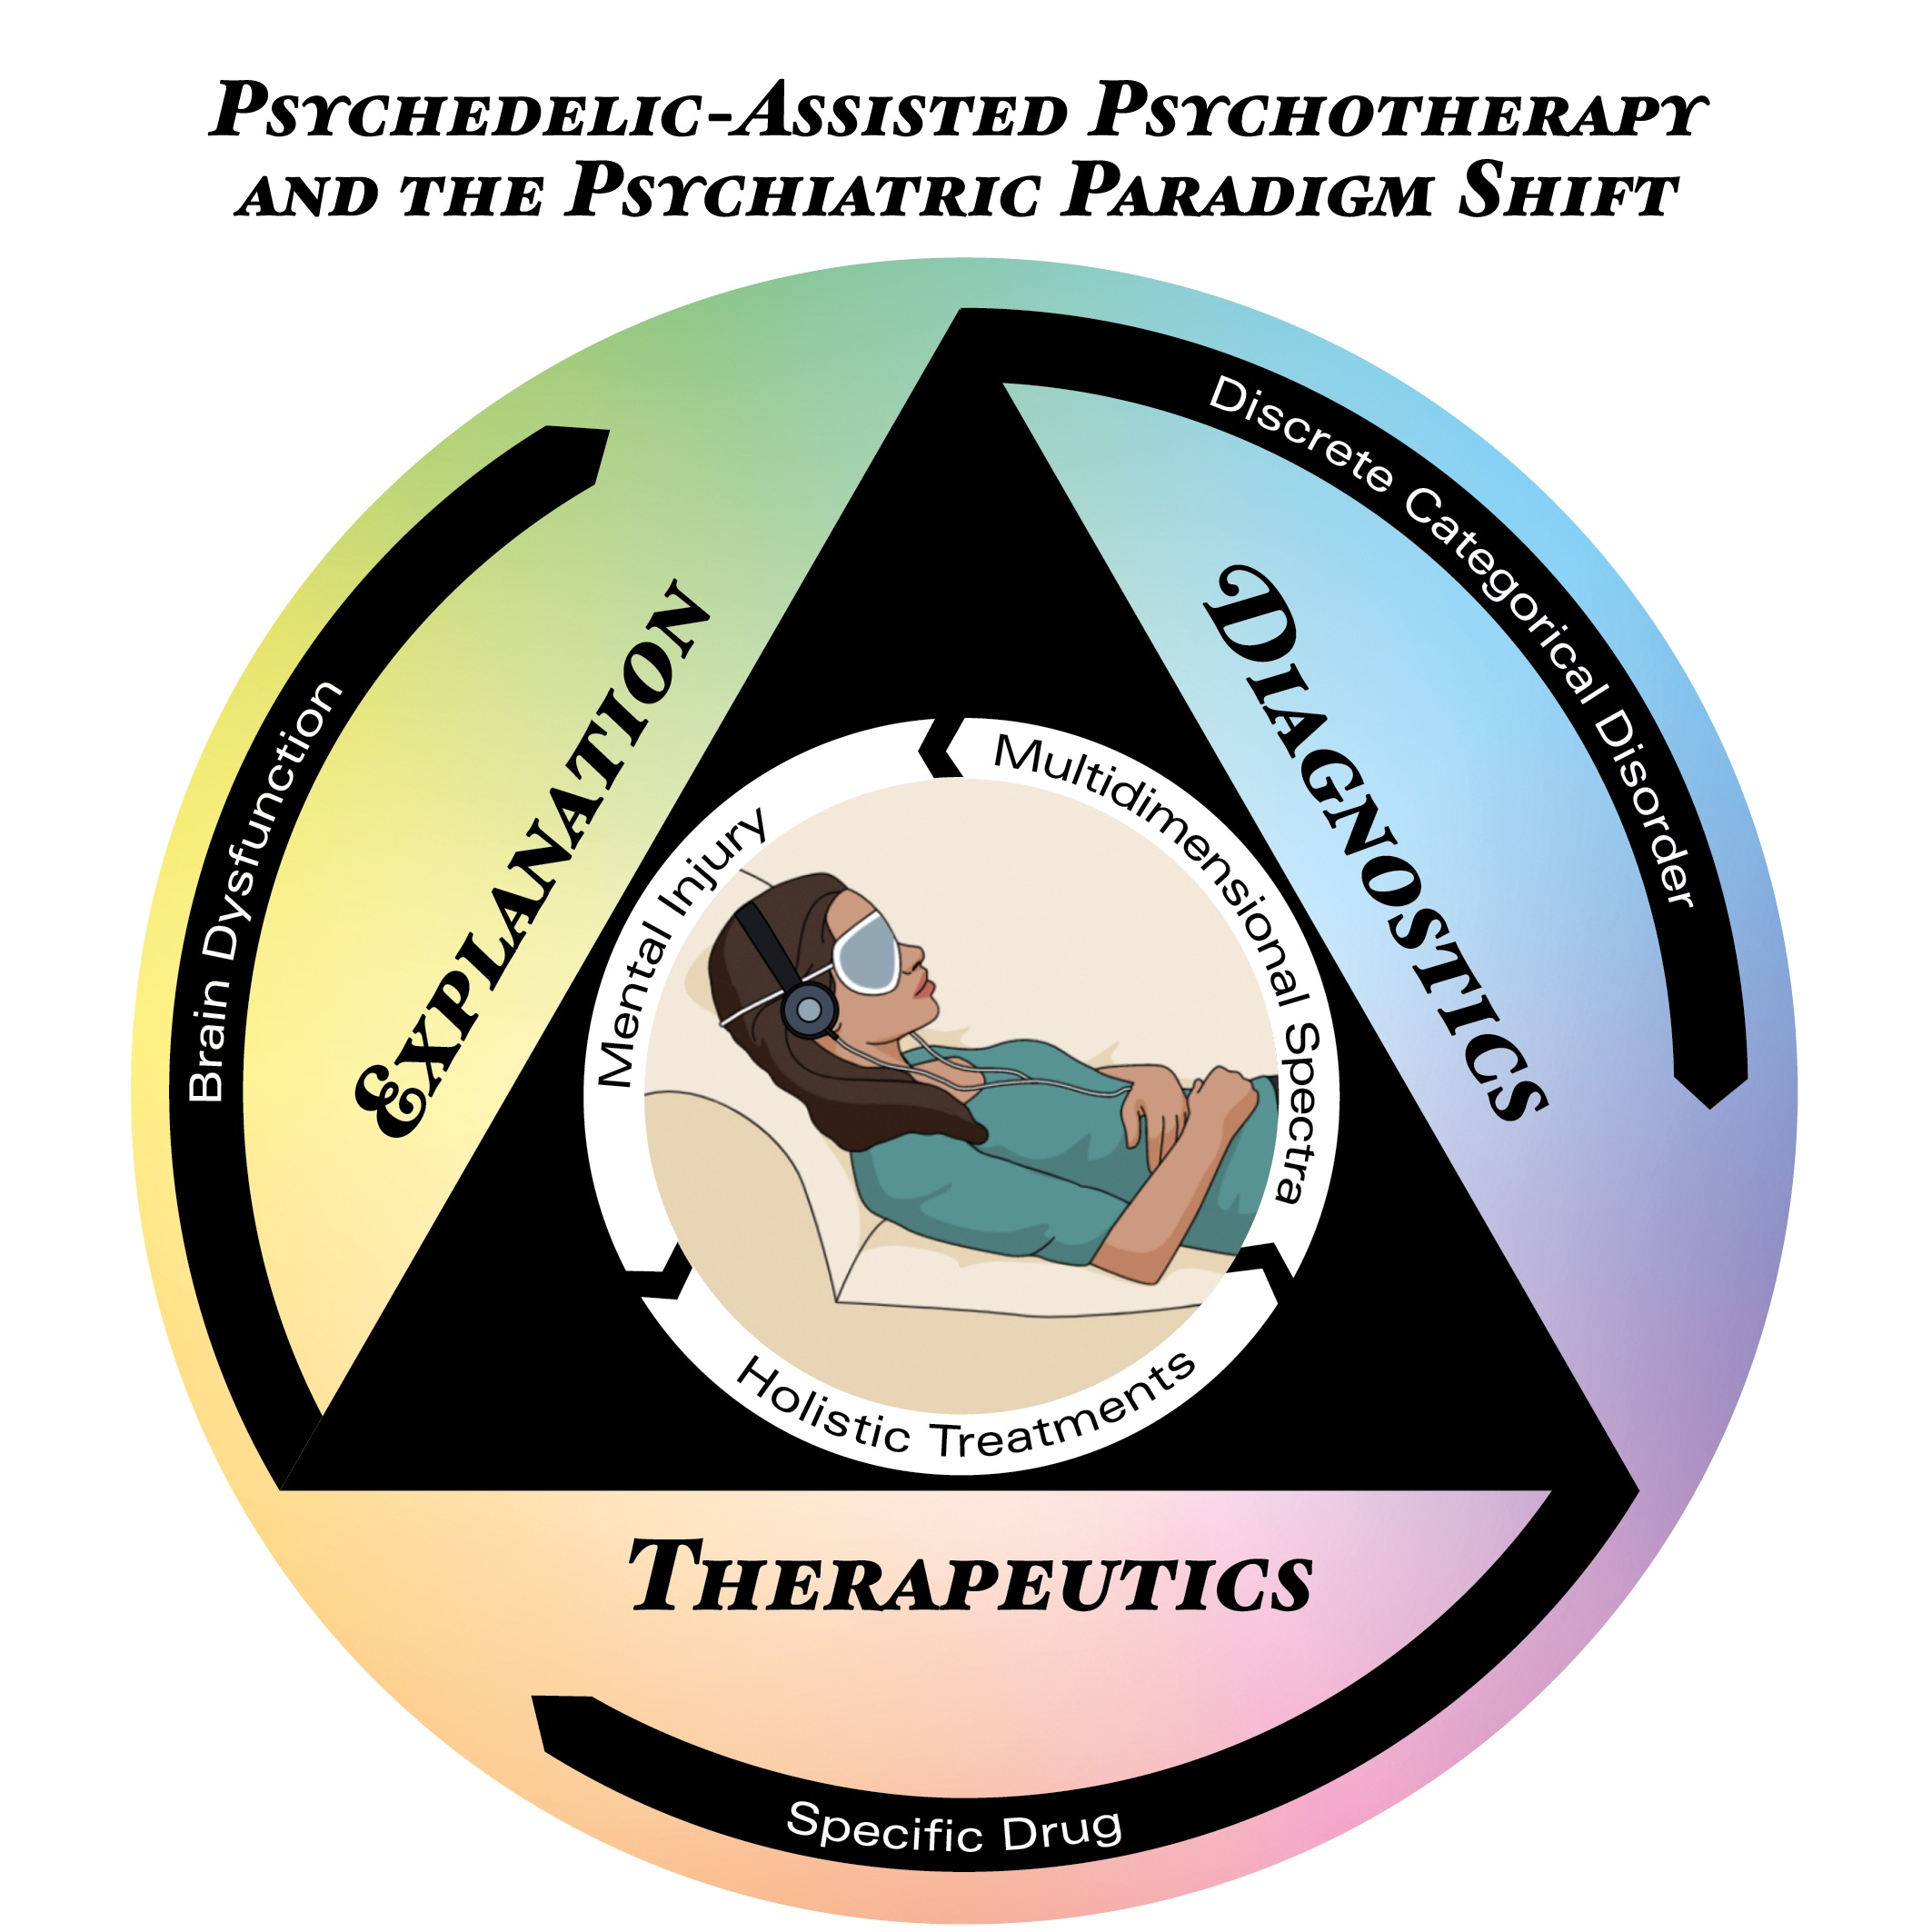 Psychedelic-Assisted Psychotherapy: A Paradigm Shift in Psychiatric Research and Development